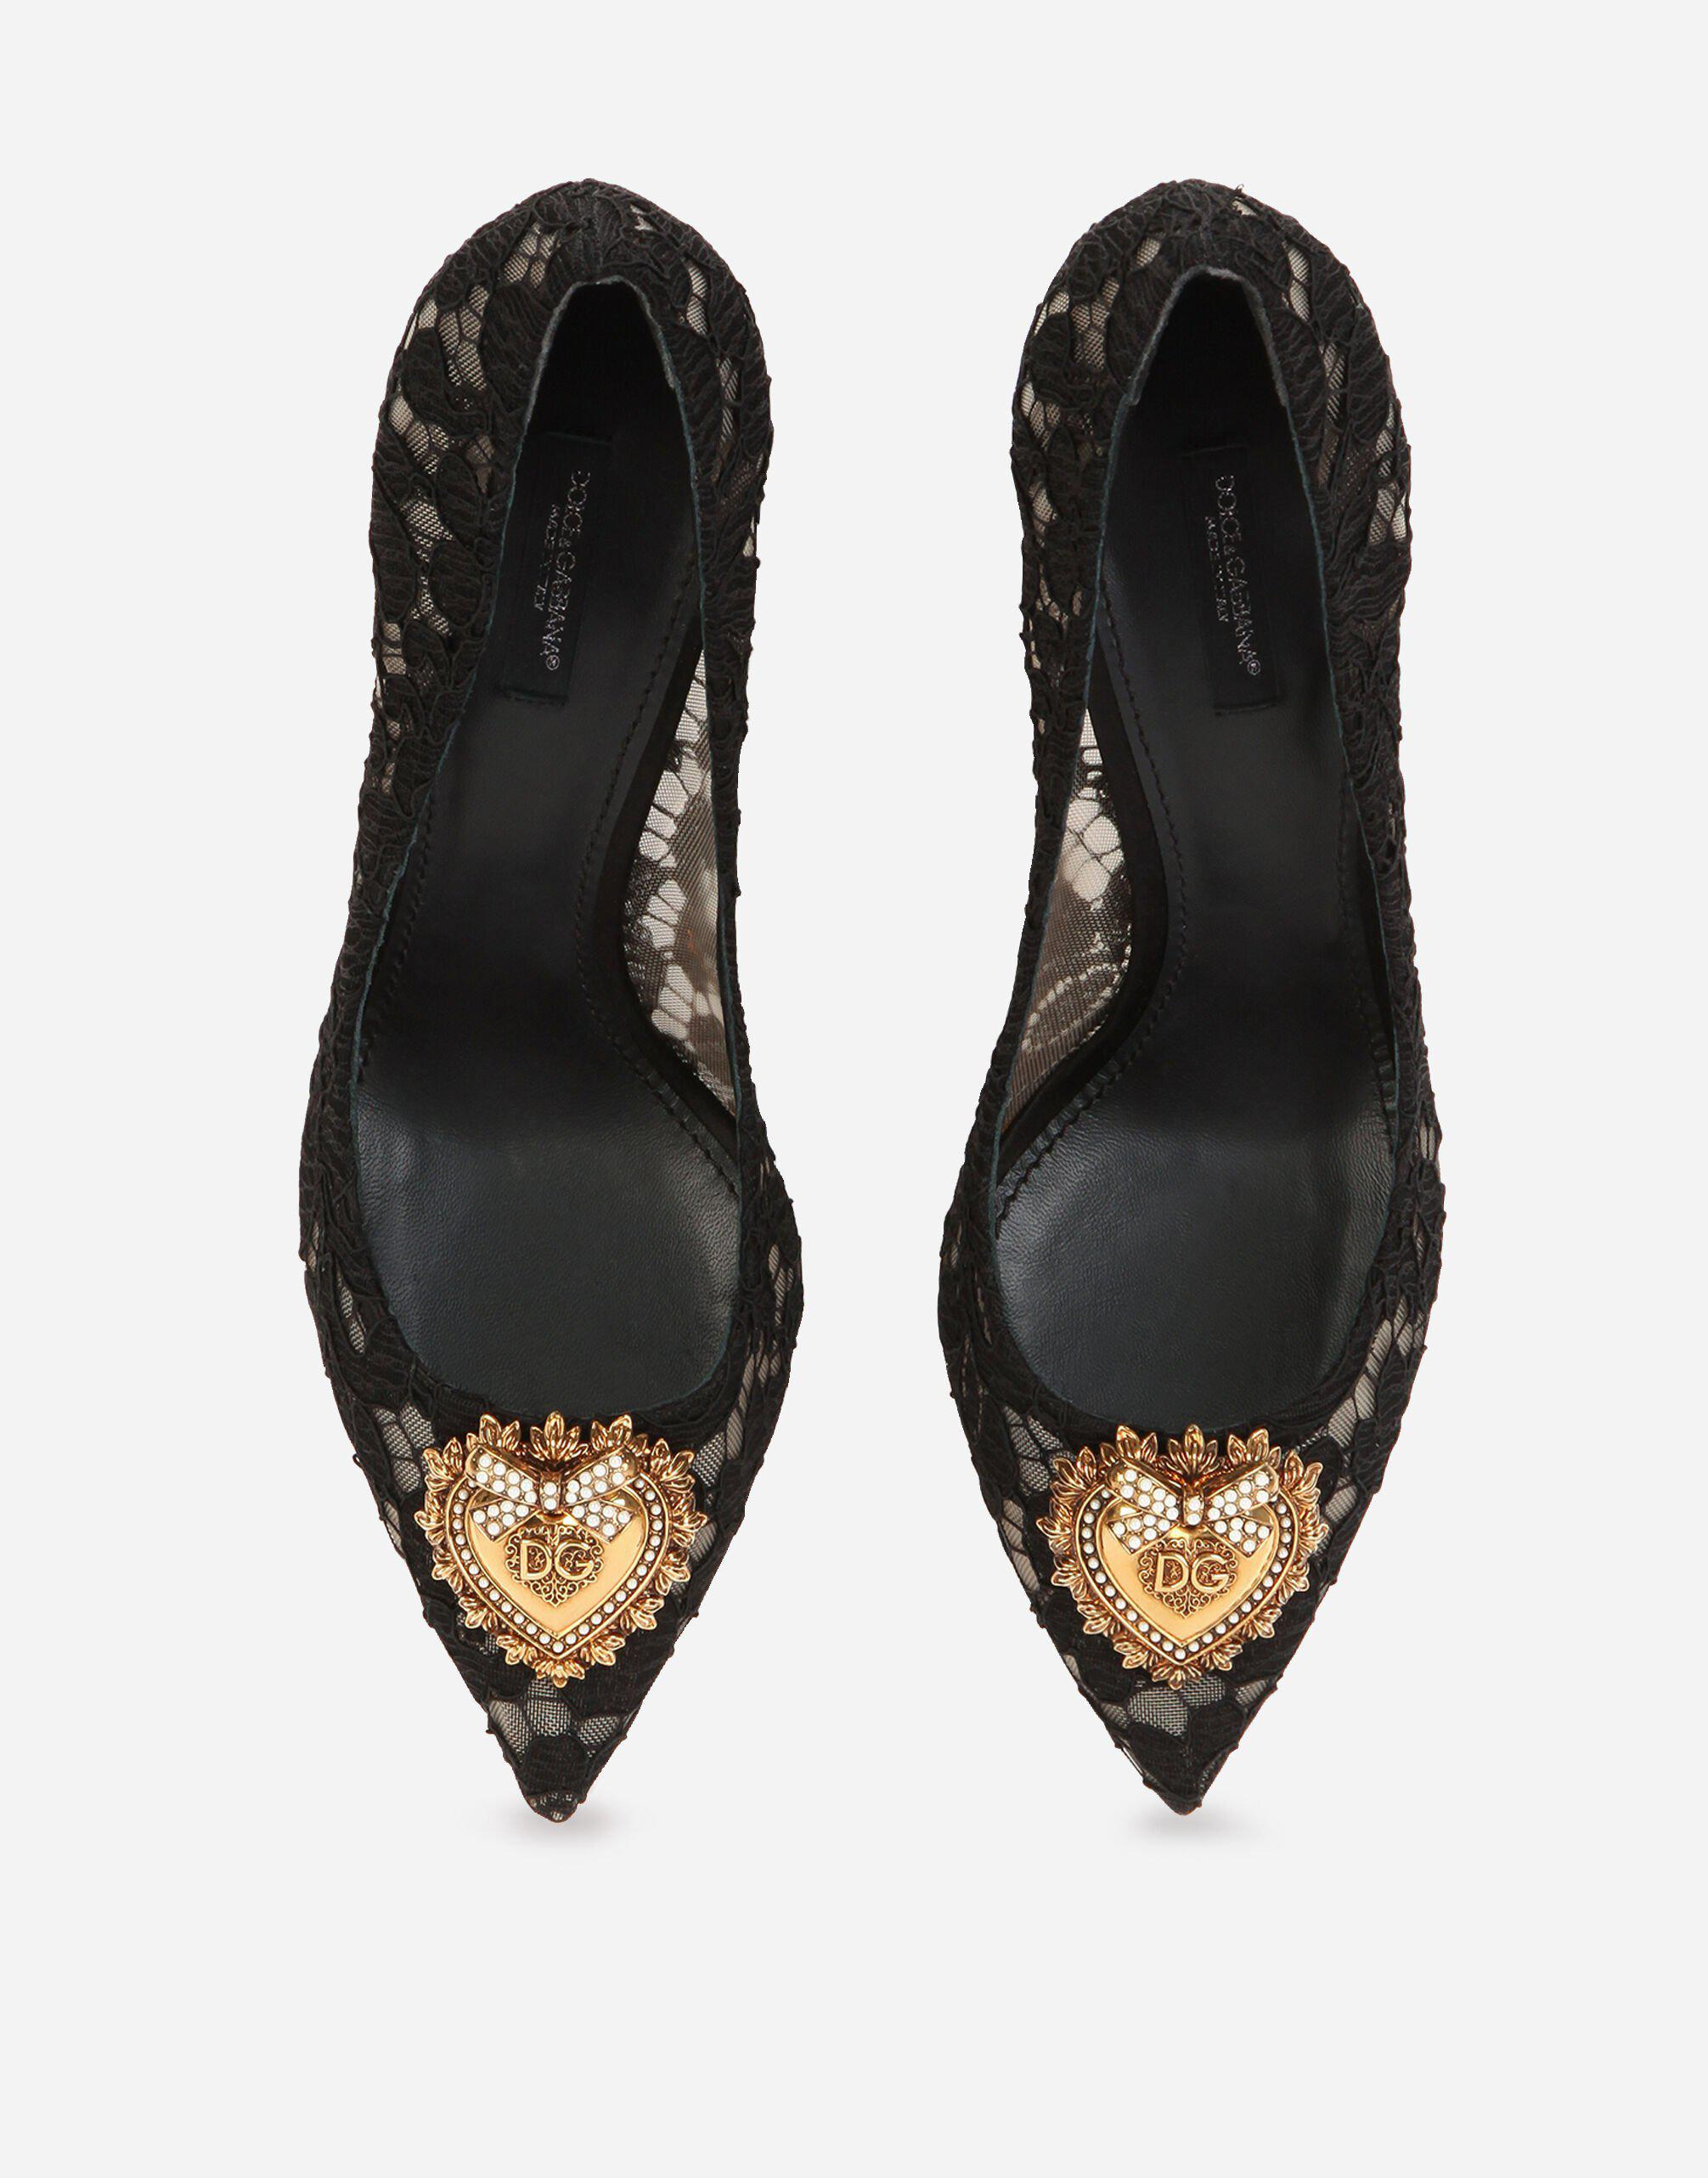 Taormina lace pumps with Devotion heart 3